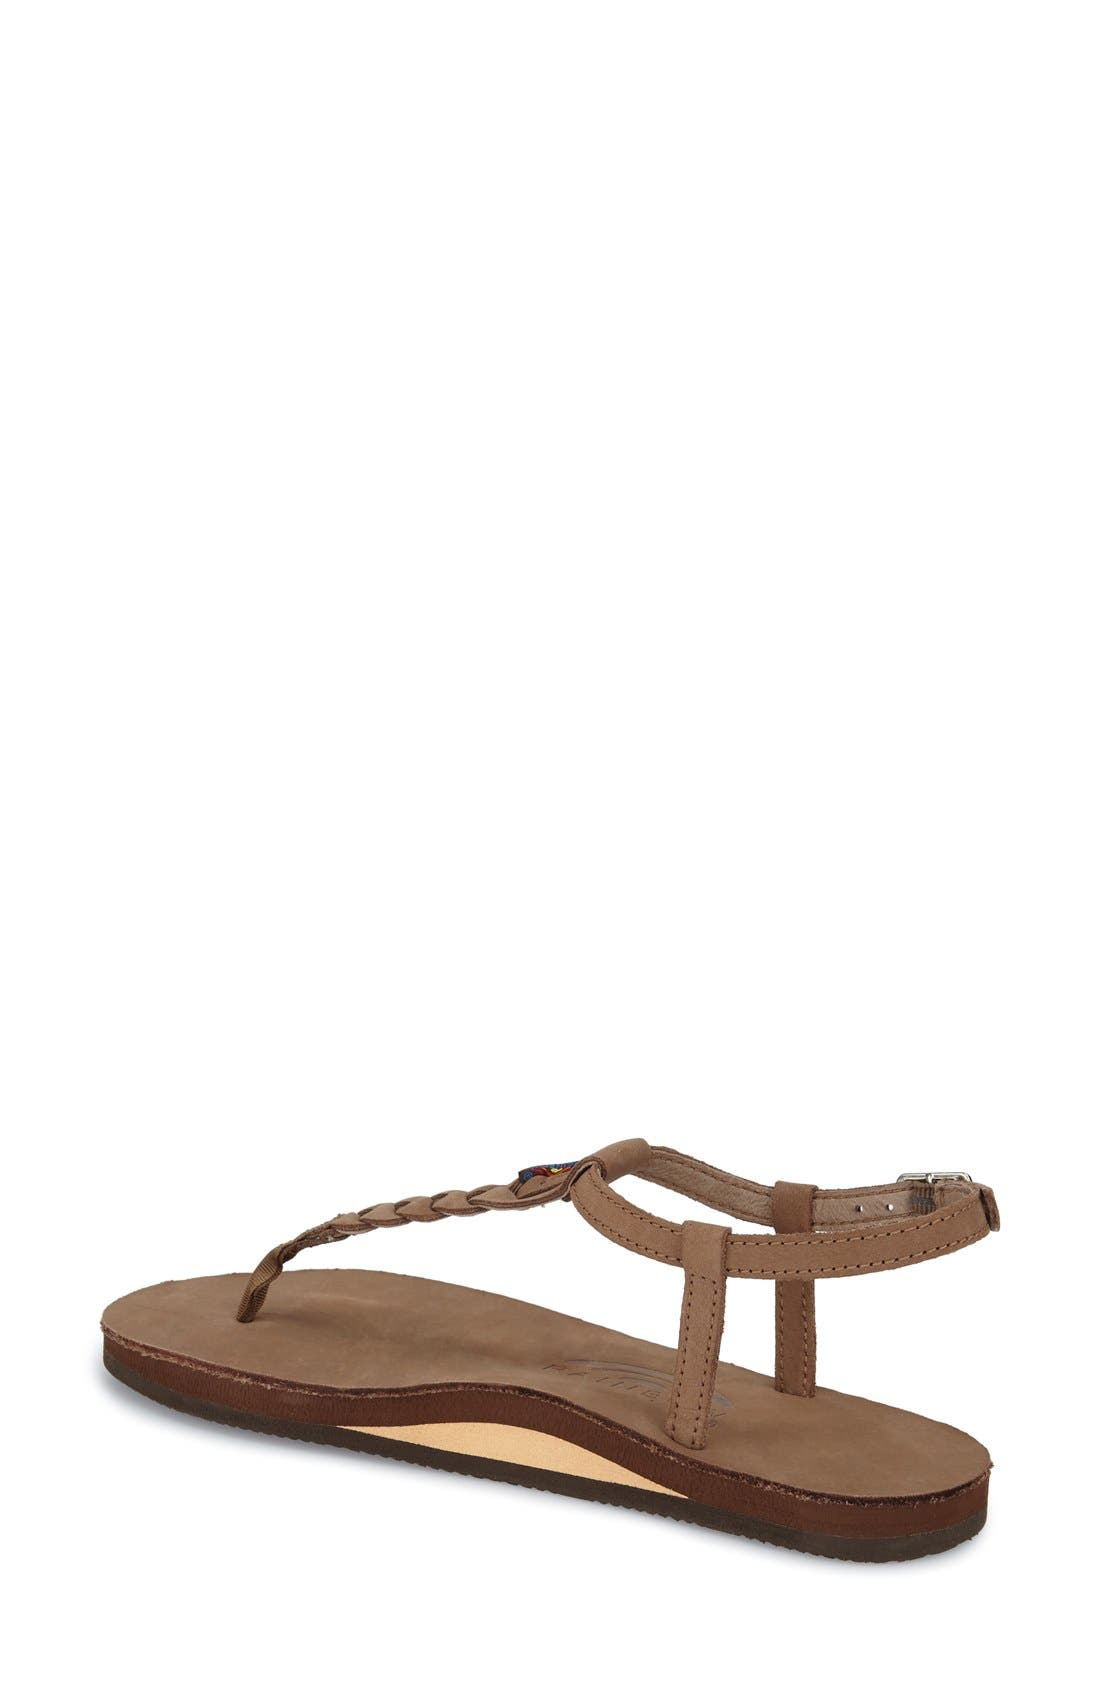 'T-Street' Braided T-Strap Sandal,                             Alternate thumbnail 3, color,